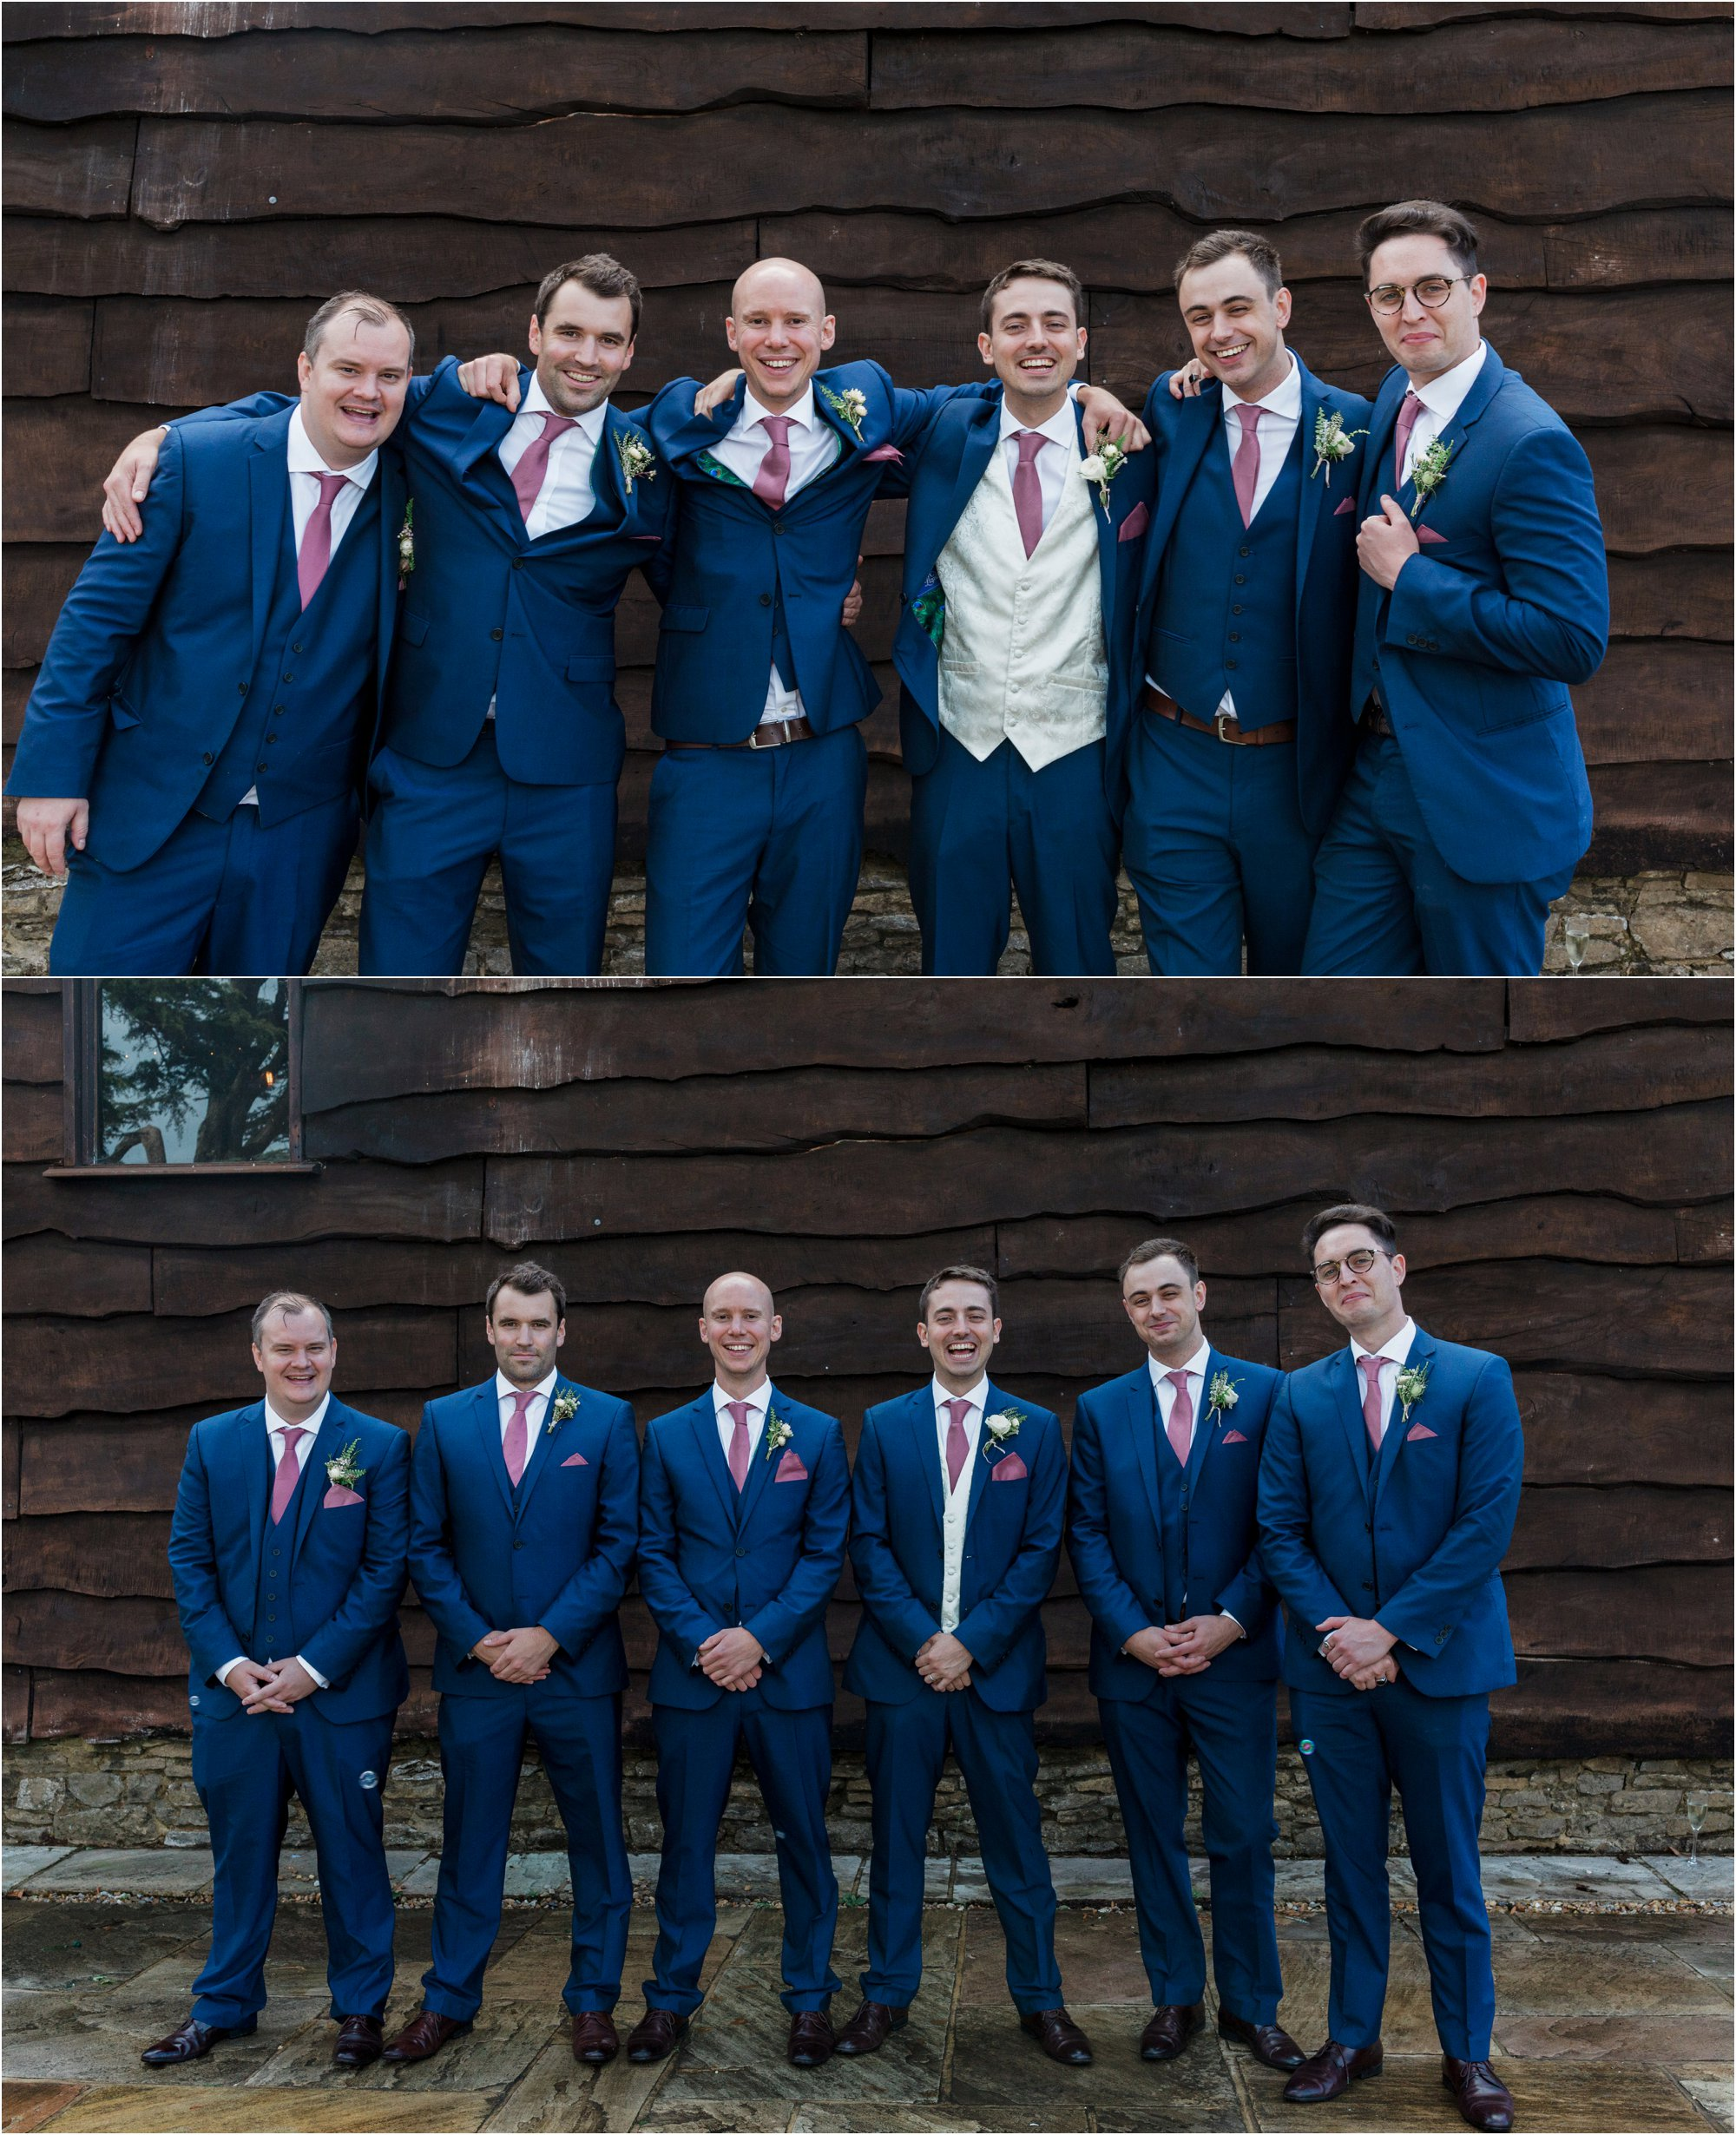 Loseley Park grooms party